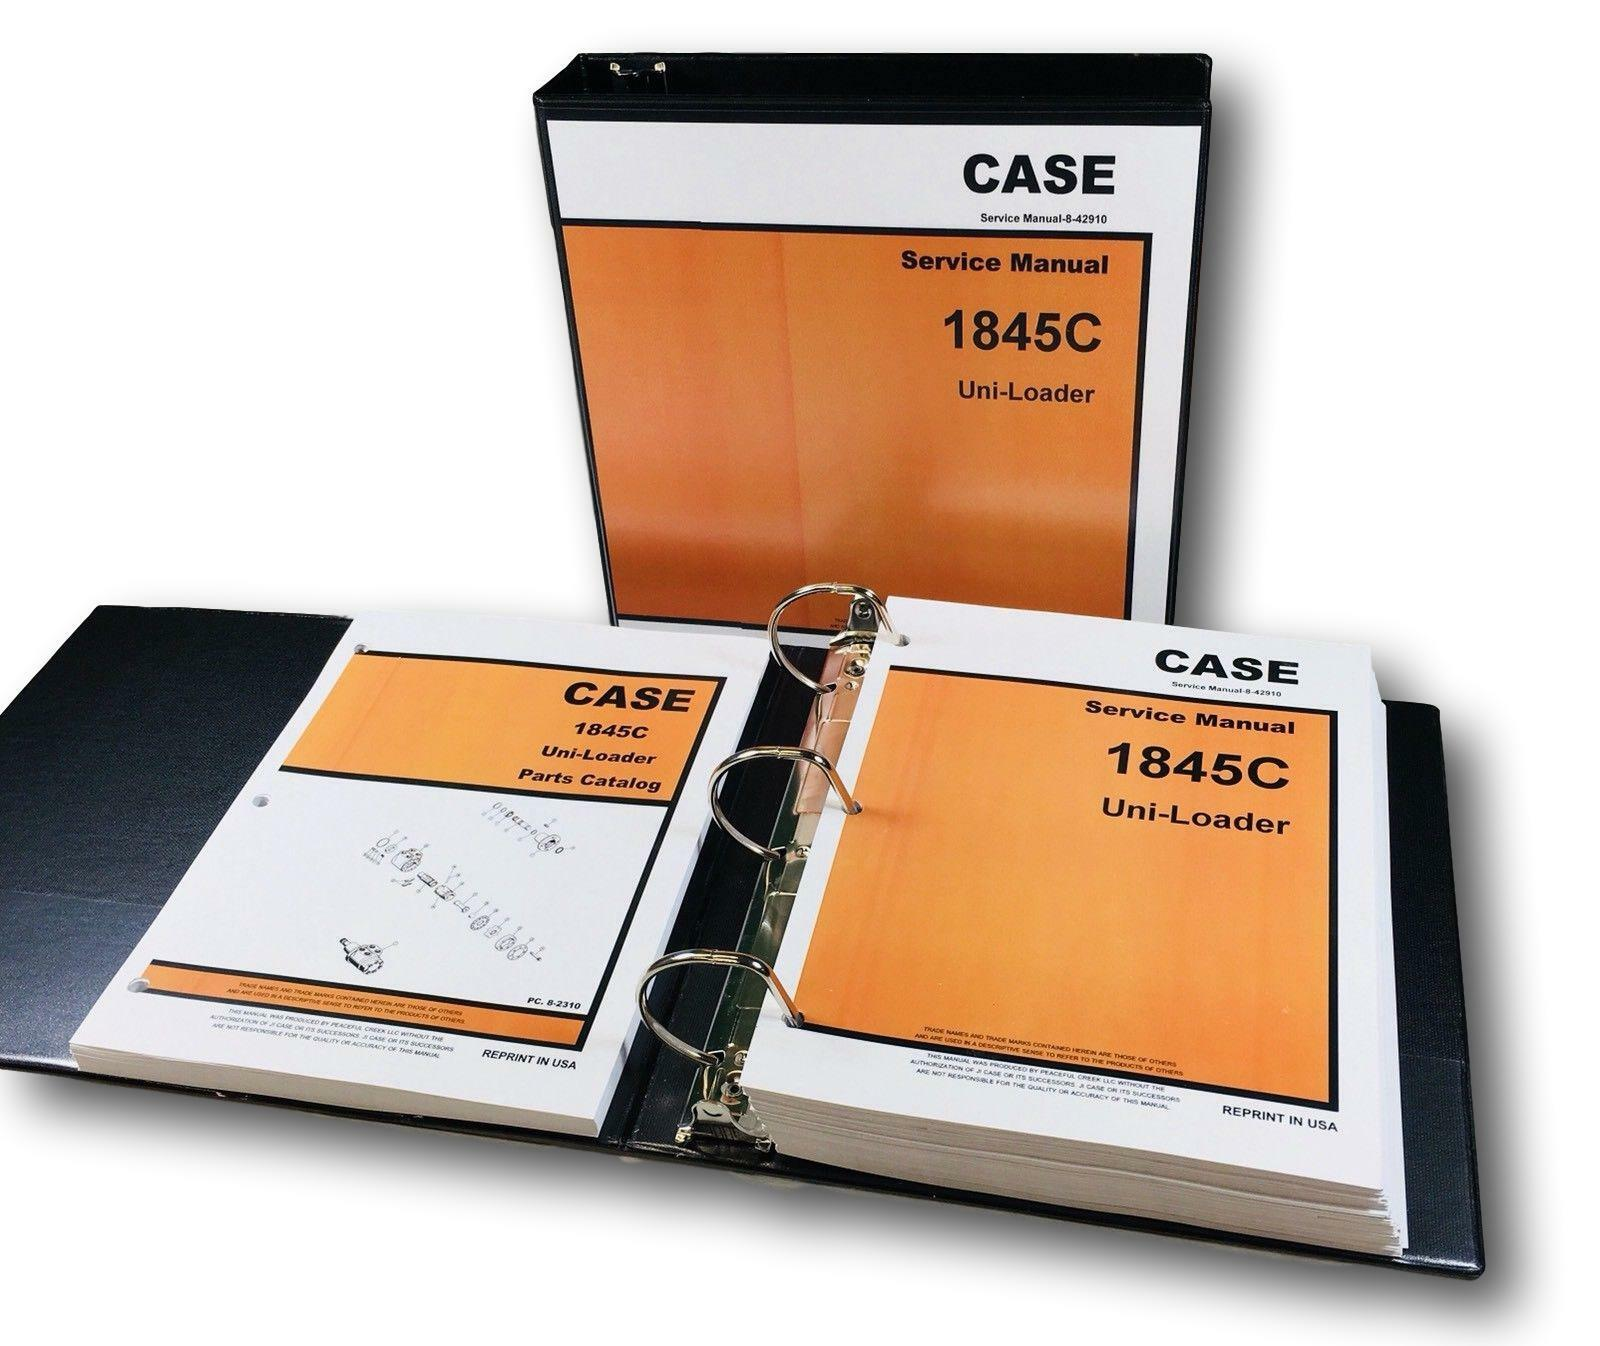 hight resolution of case 1845c uni loader skid steer service repair manual for sale online ebay